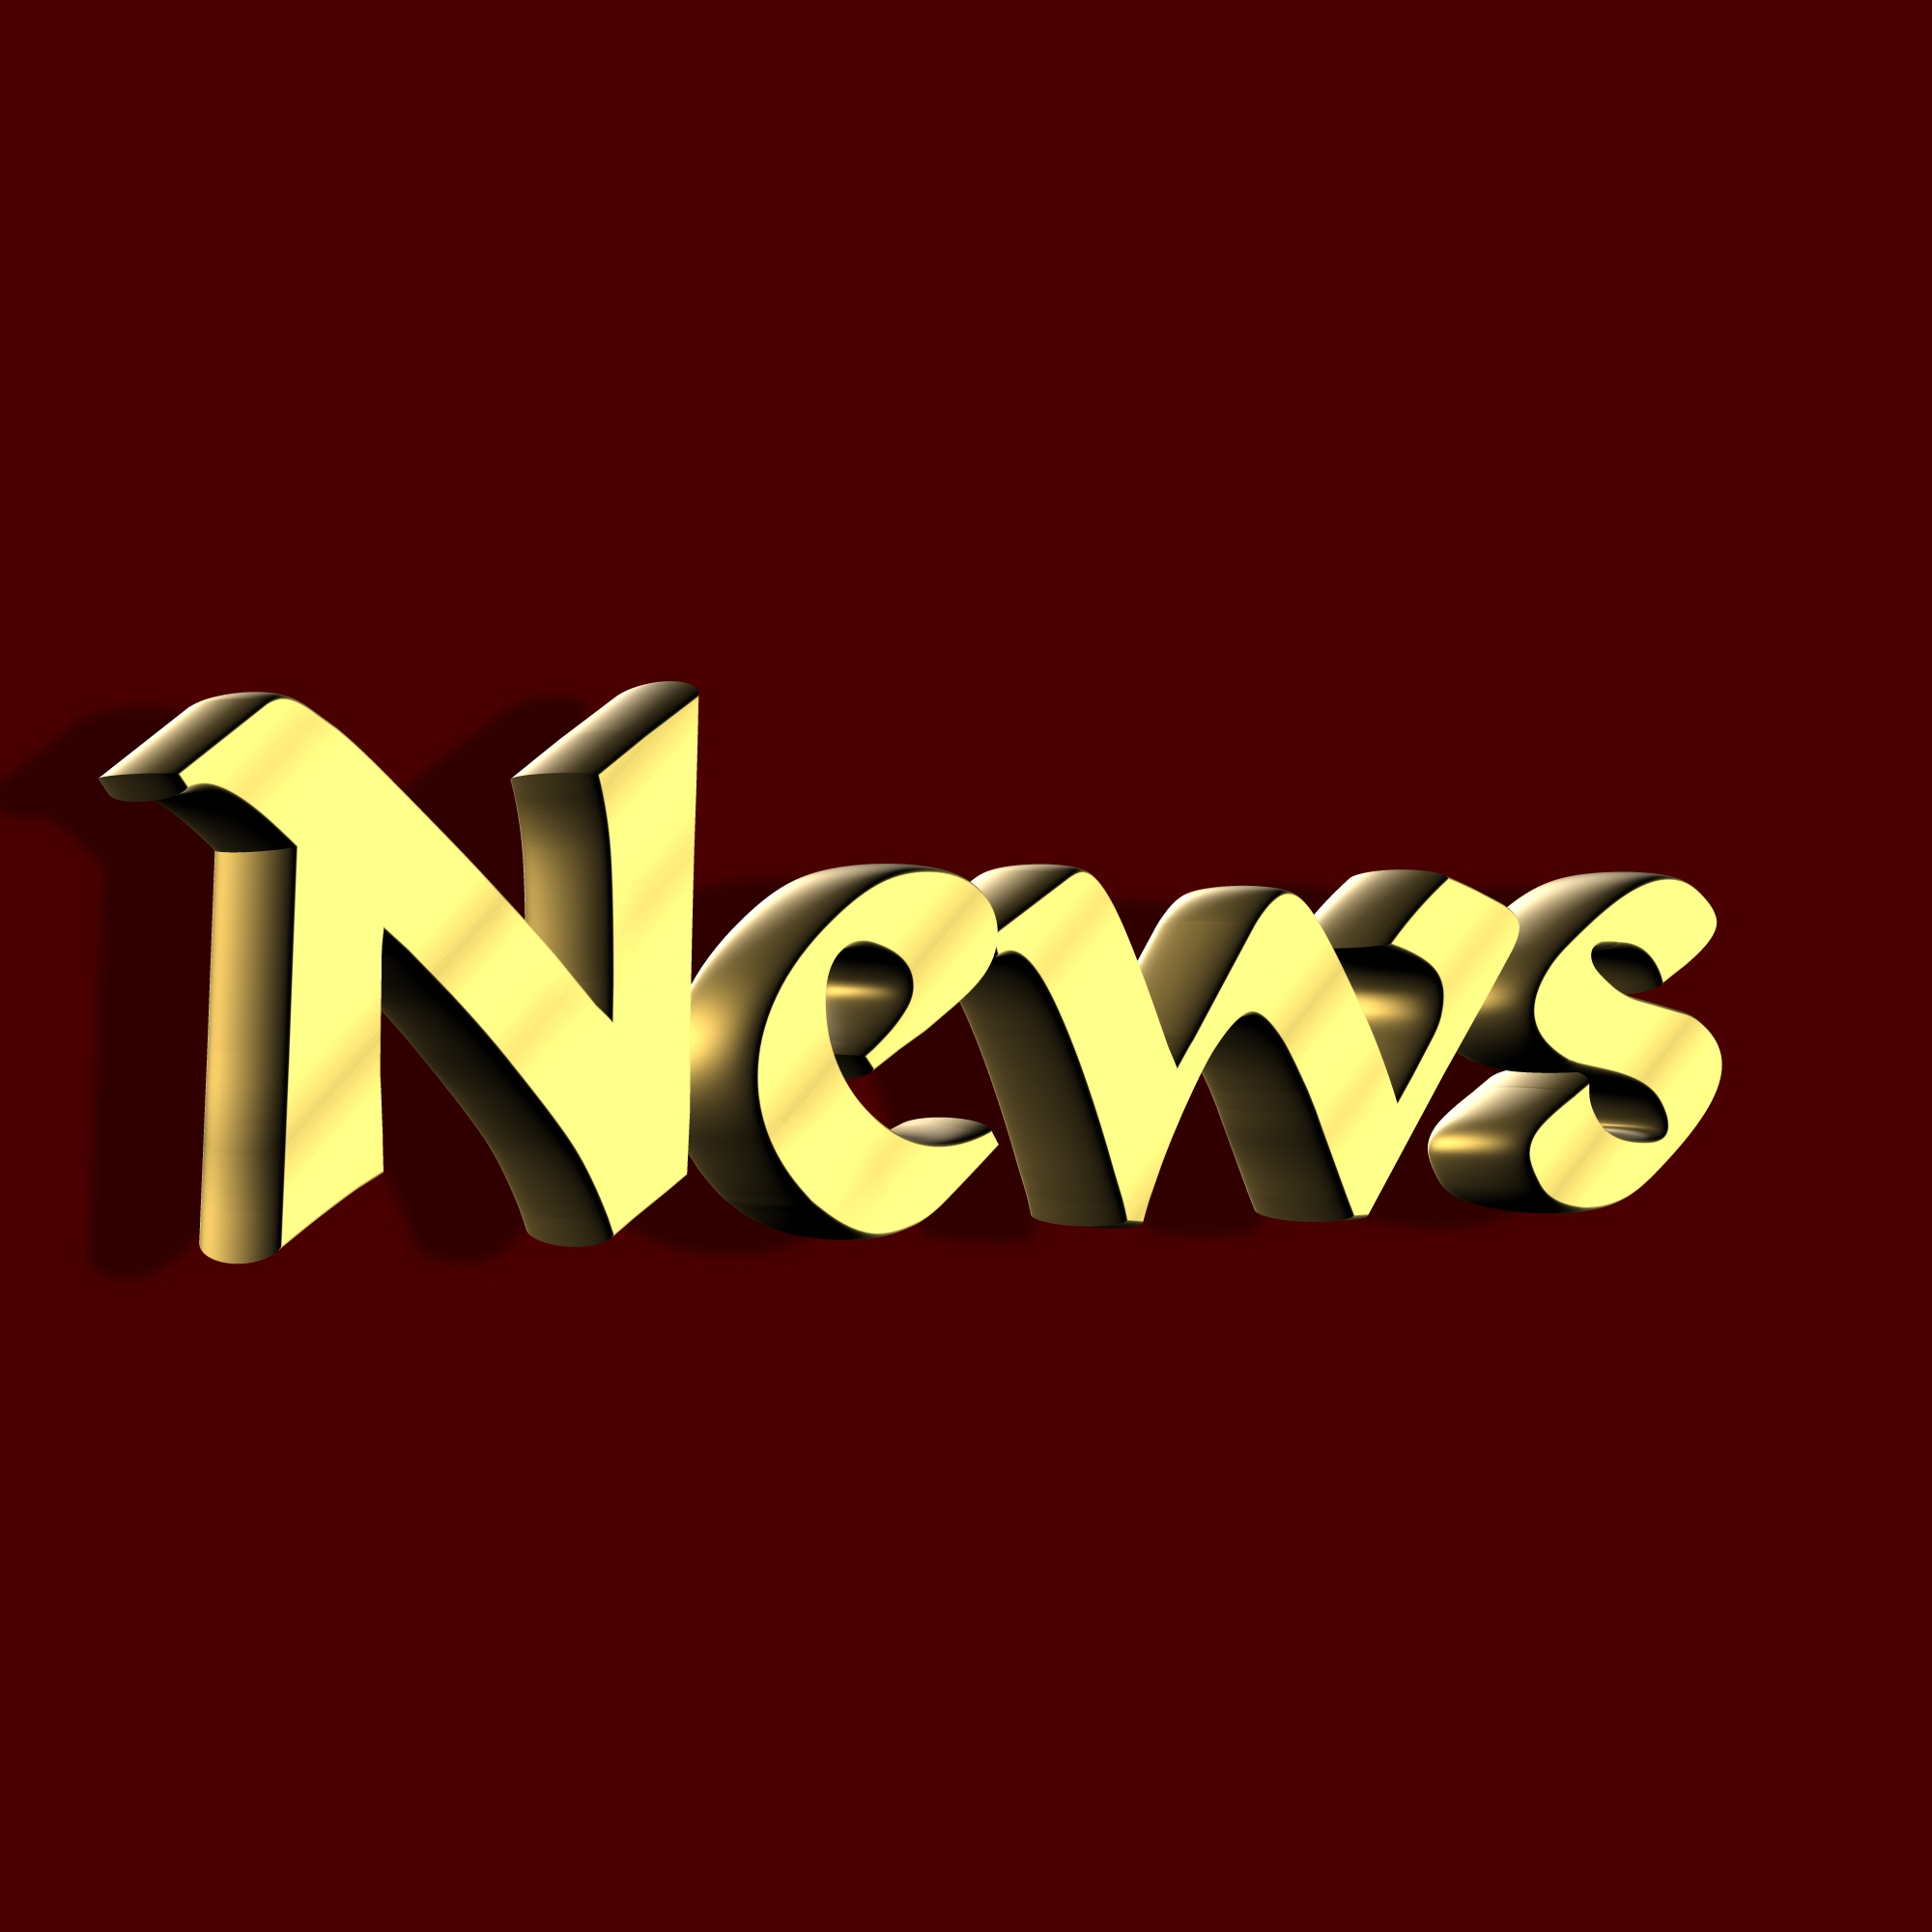 Golden News Text, 3dtext, Character, Golden, News, HQ Photo